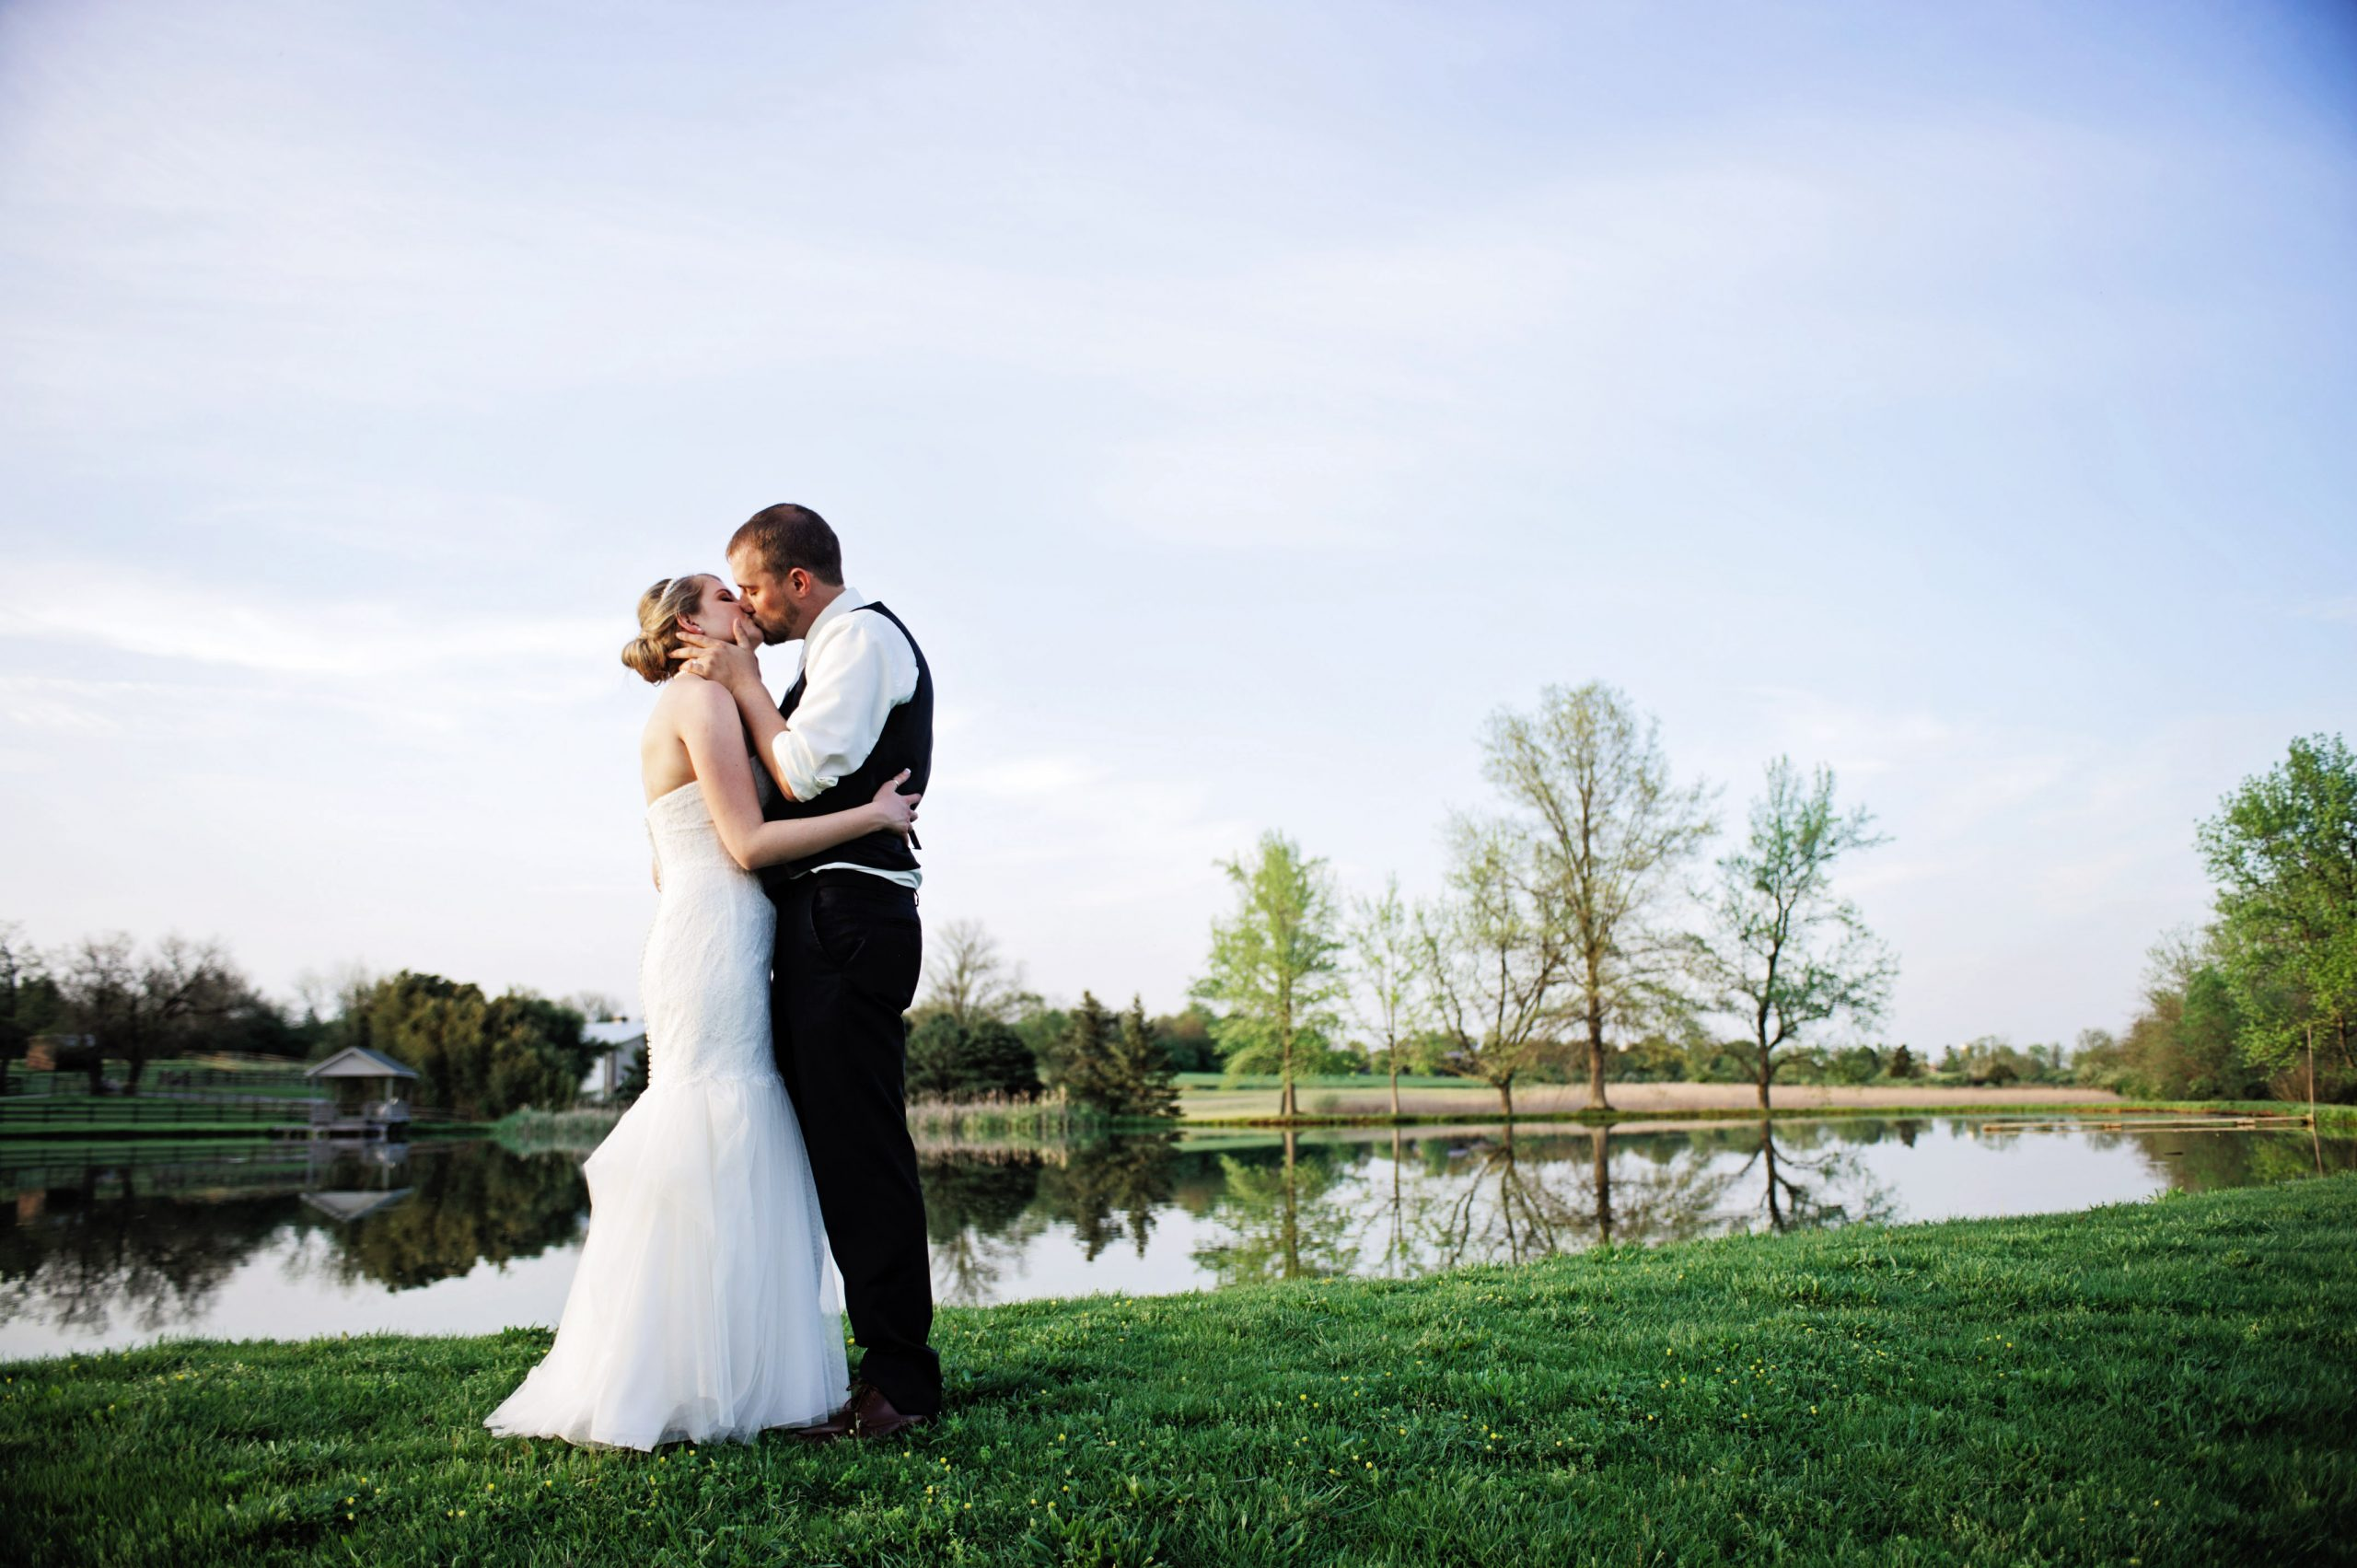 Lakeview Farms of York, PA offered a classic romantic venue for Kady and Ricky this past Spring. Lovefusion had the privilege to photograph such a loving couple. Featured on Dream Weddings.